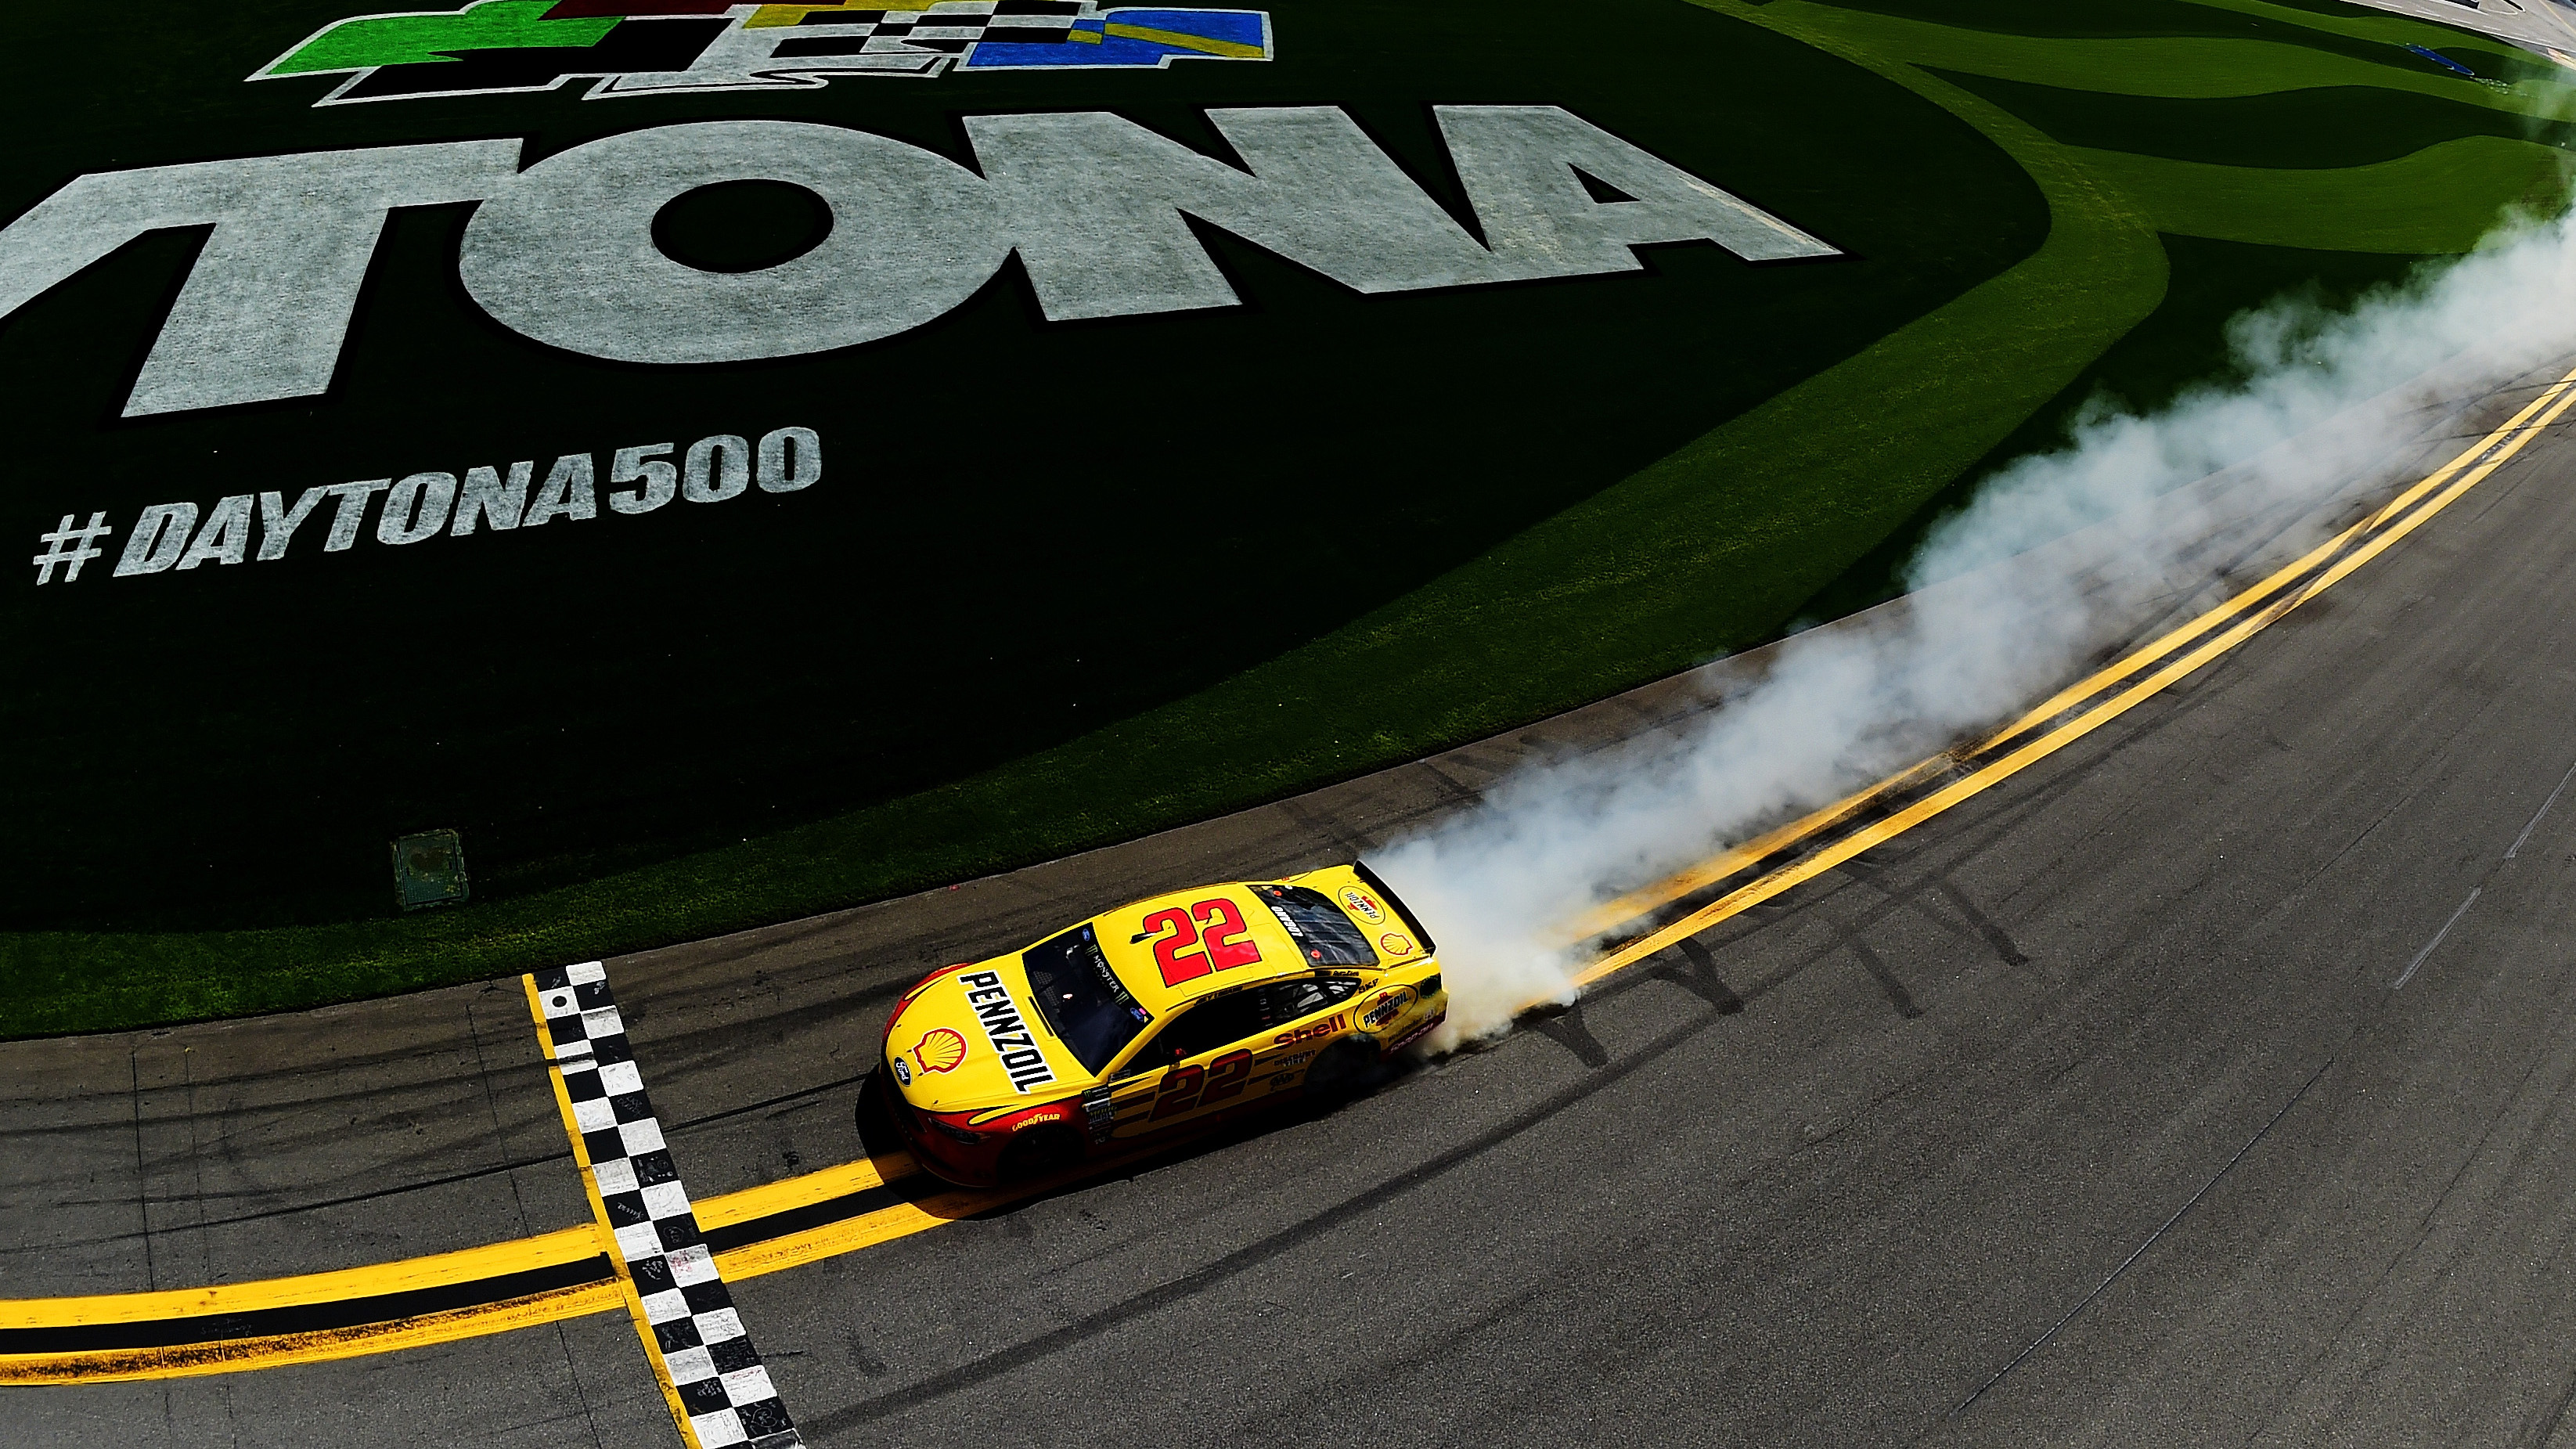 DAYTONA BEACH, FL - FEBRUARY 19:  Joey Logano, driver of the #22 Shell Pennzoil Ford, celebrates with a burnout after winning the weather delayed Monster Energy NASCAR Cup Series Advance Auto Parts Clash at Daytona International Speedway on February 19, 2017 in Daytona Beach, Florida.  (Photo by Jared C. Tilton/Getty Images)